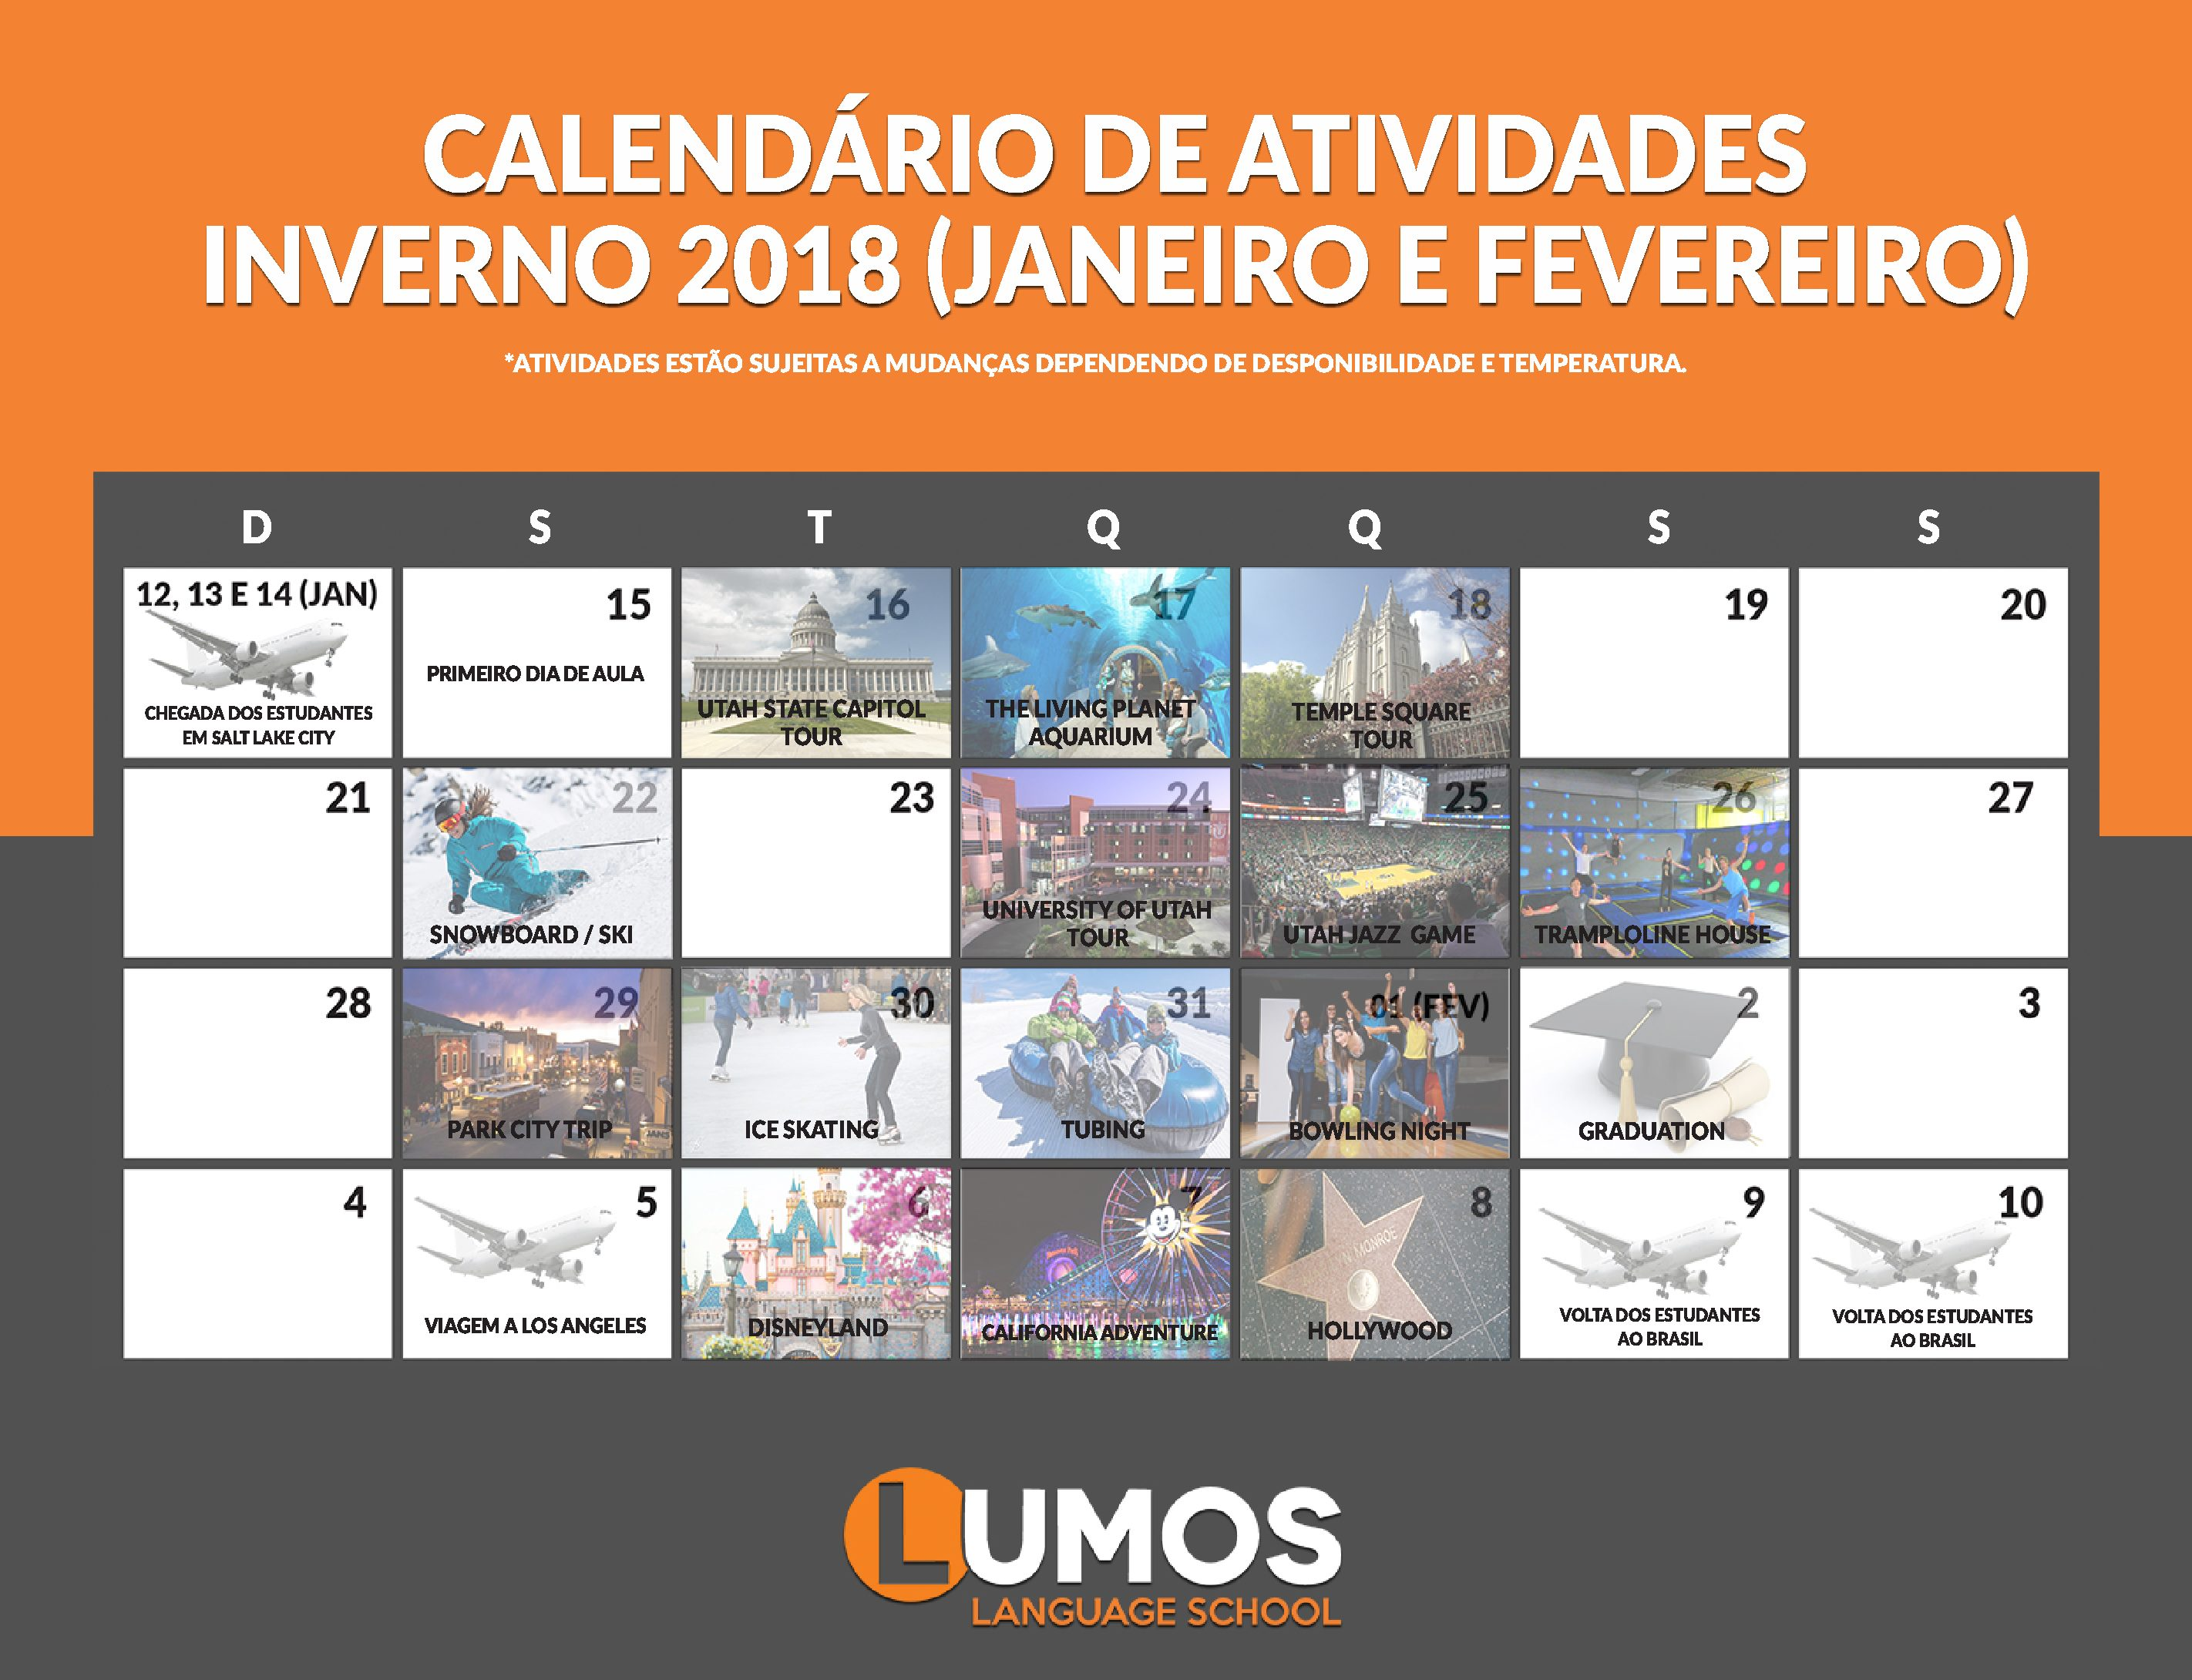 CALENDARIO inverno18 INTERCAMBIO